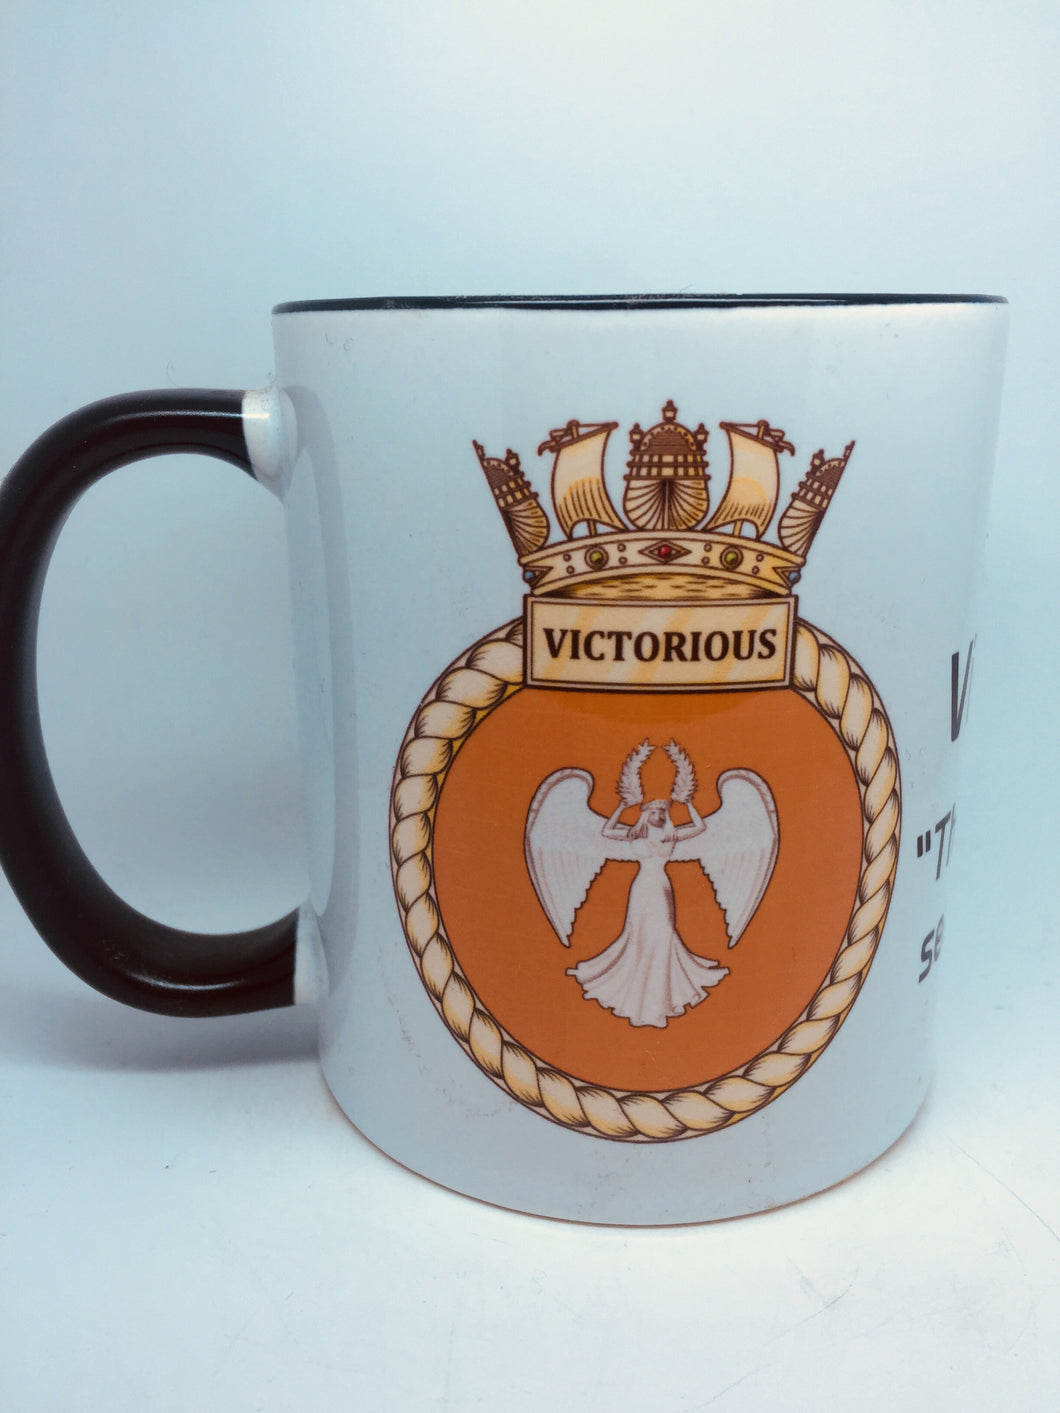 HMS Victorious Coffee/Travel Mug